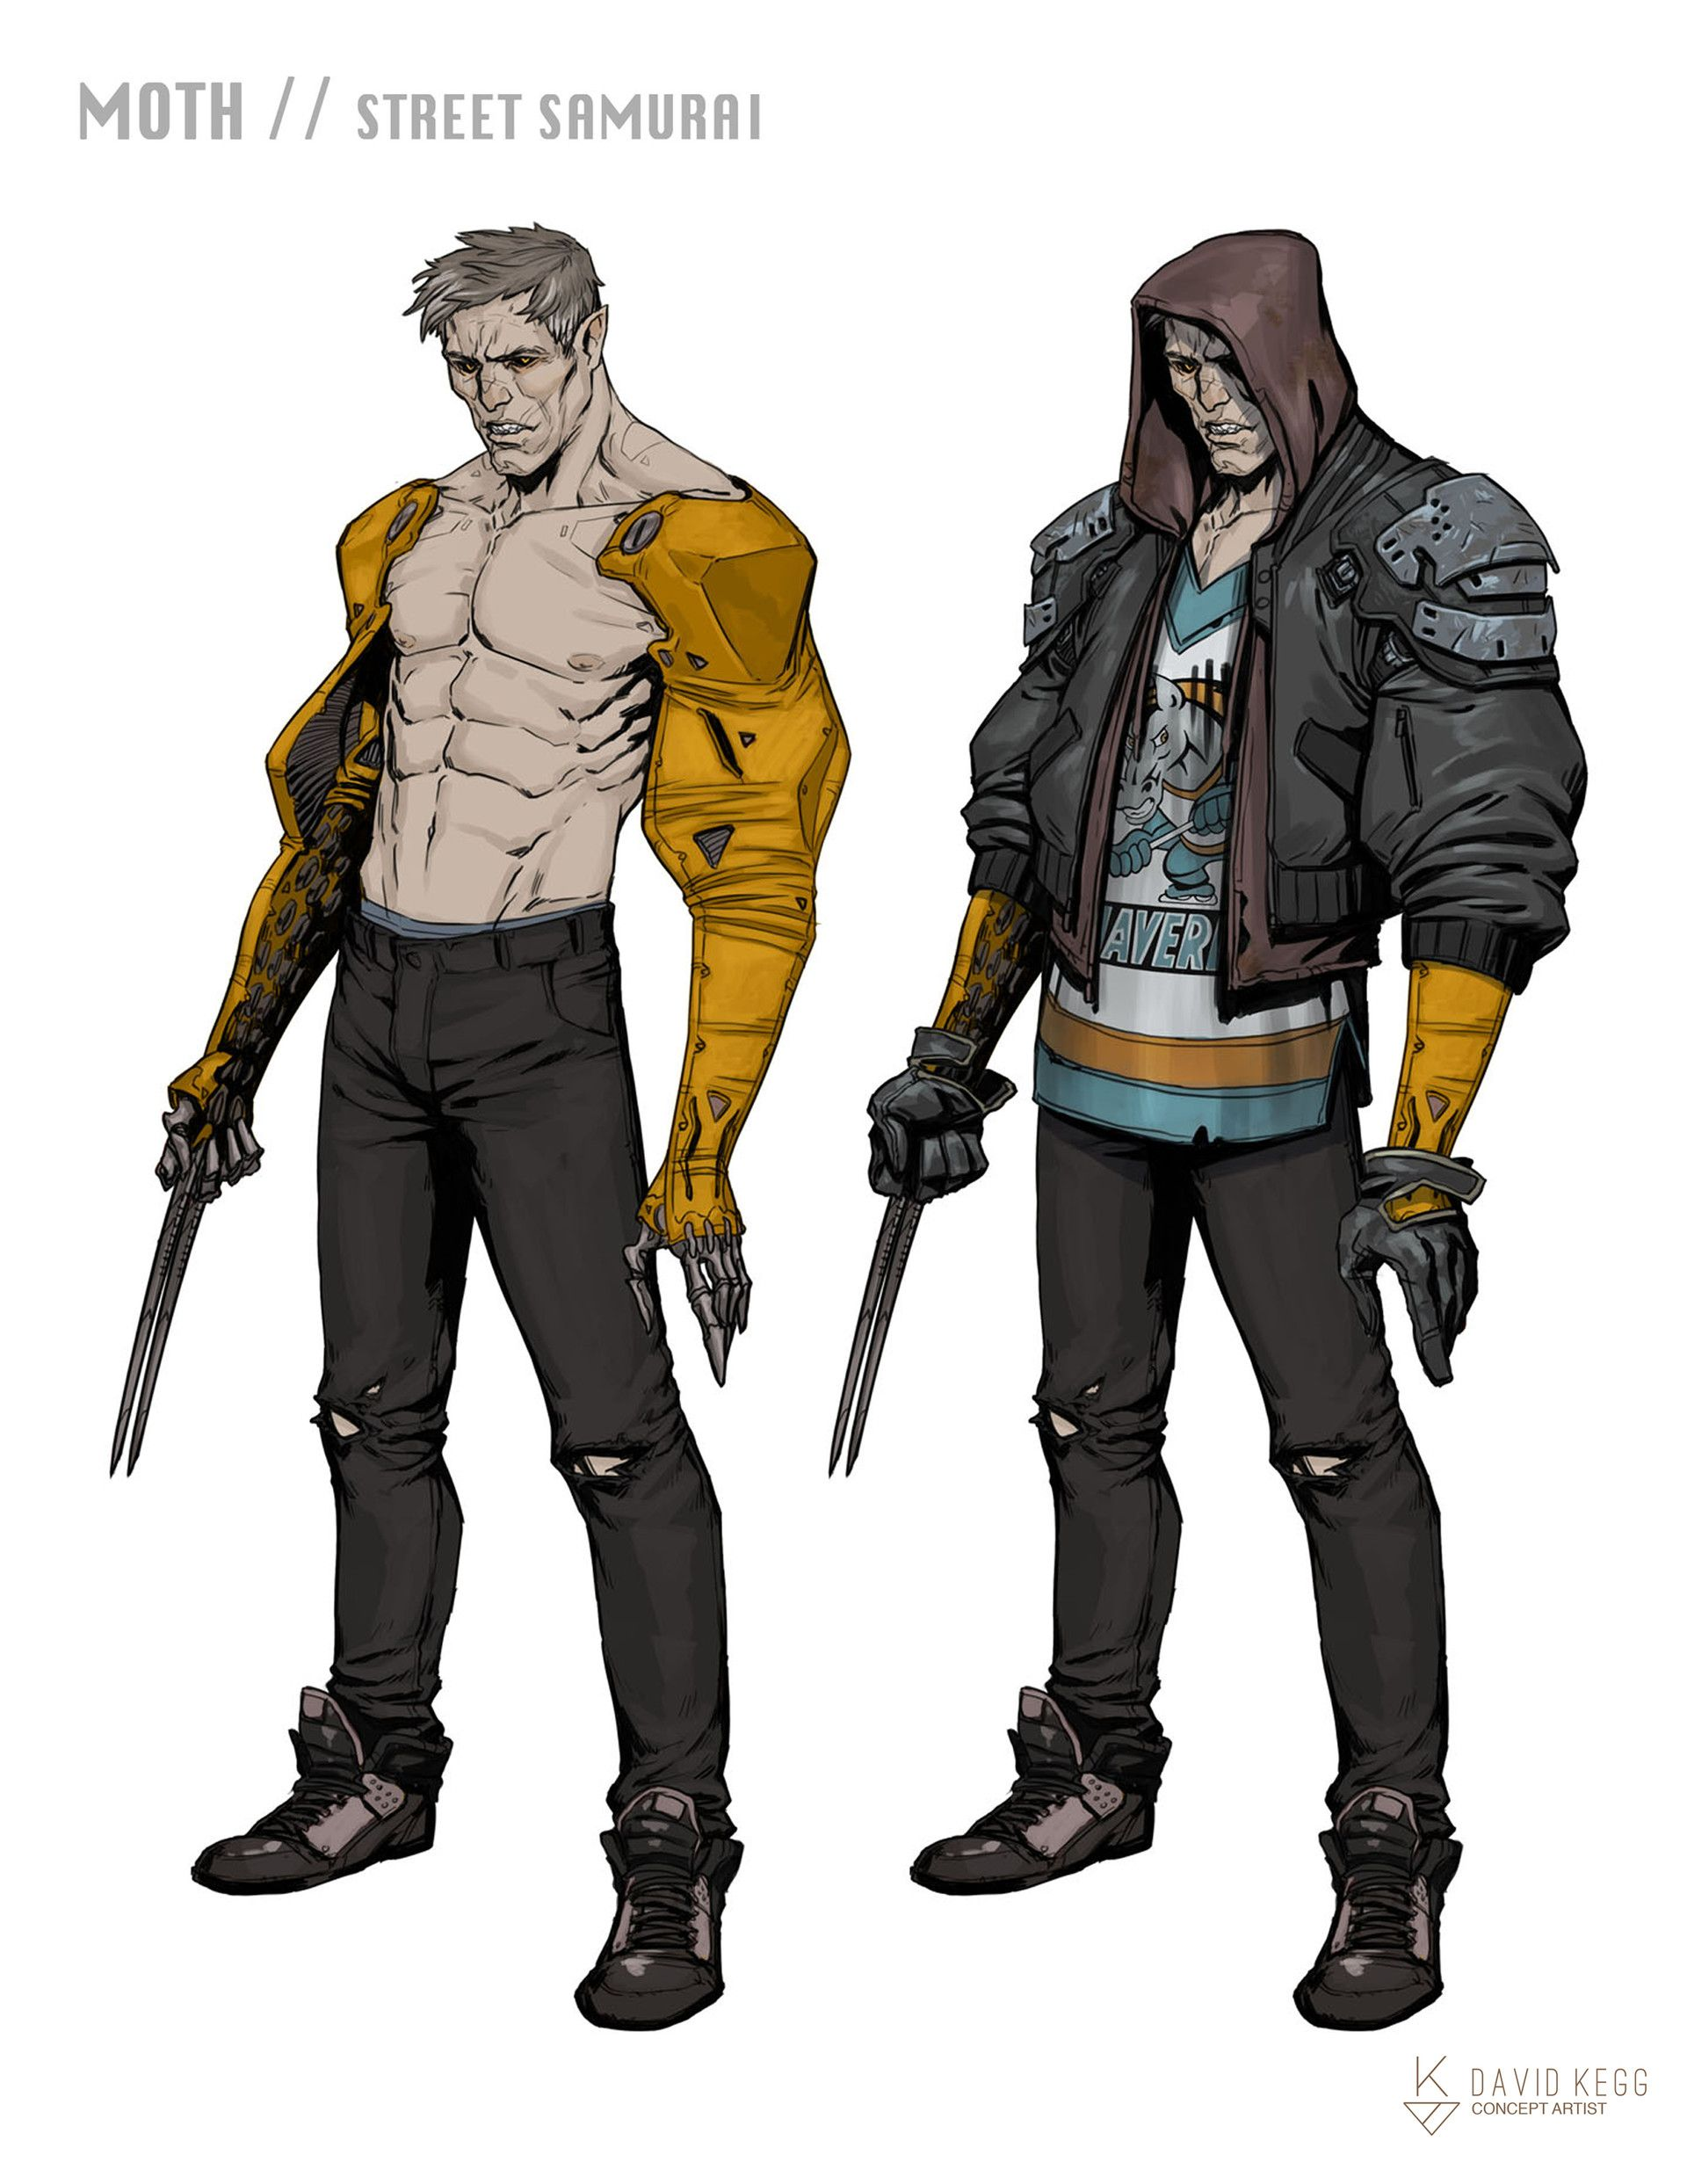 Character Design And Concept Art : Artstation rpg characters moth street samurai david